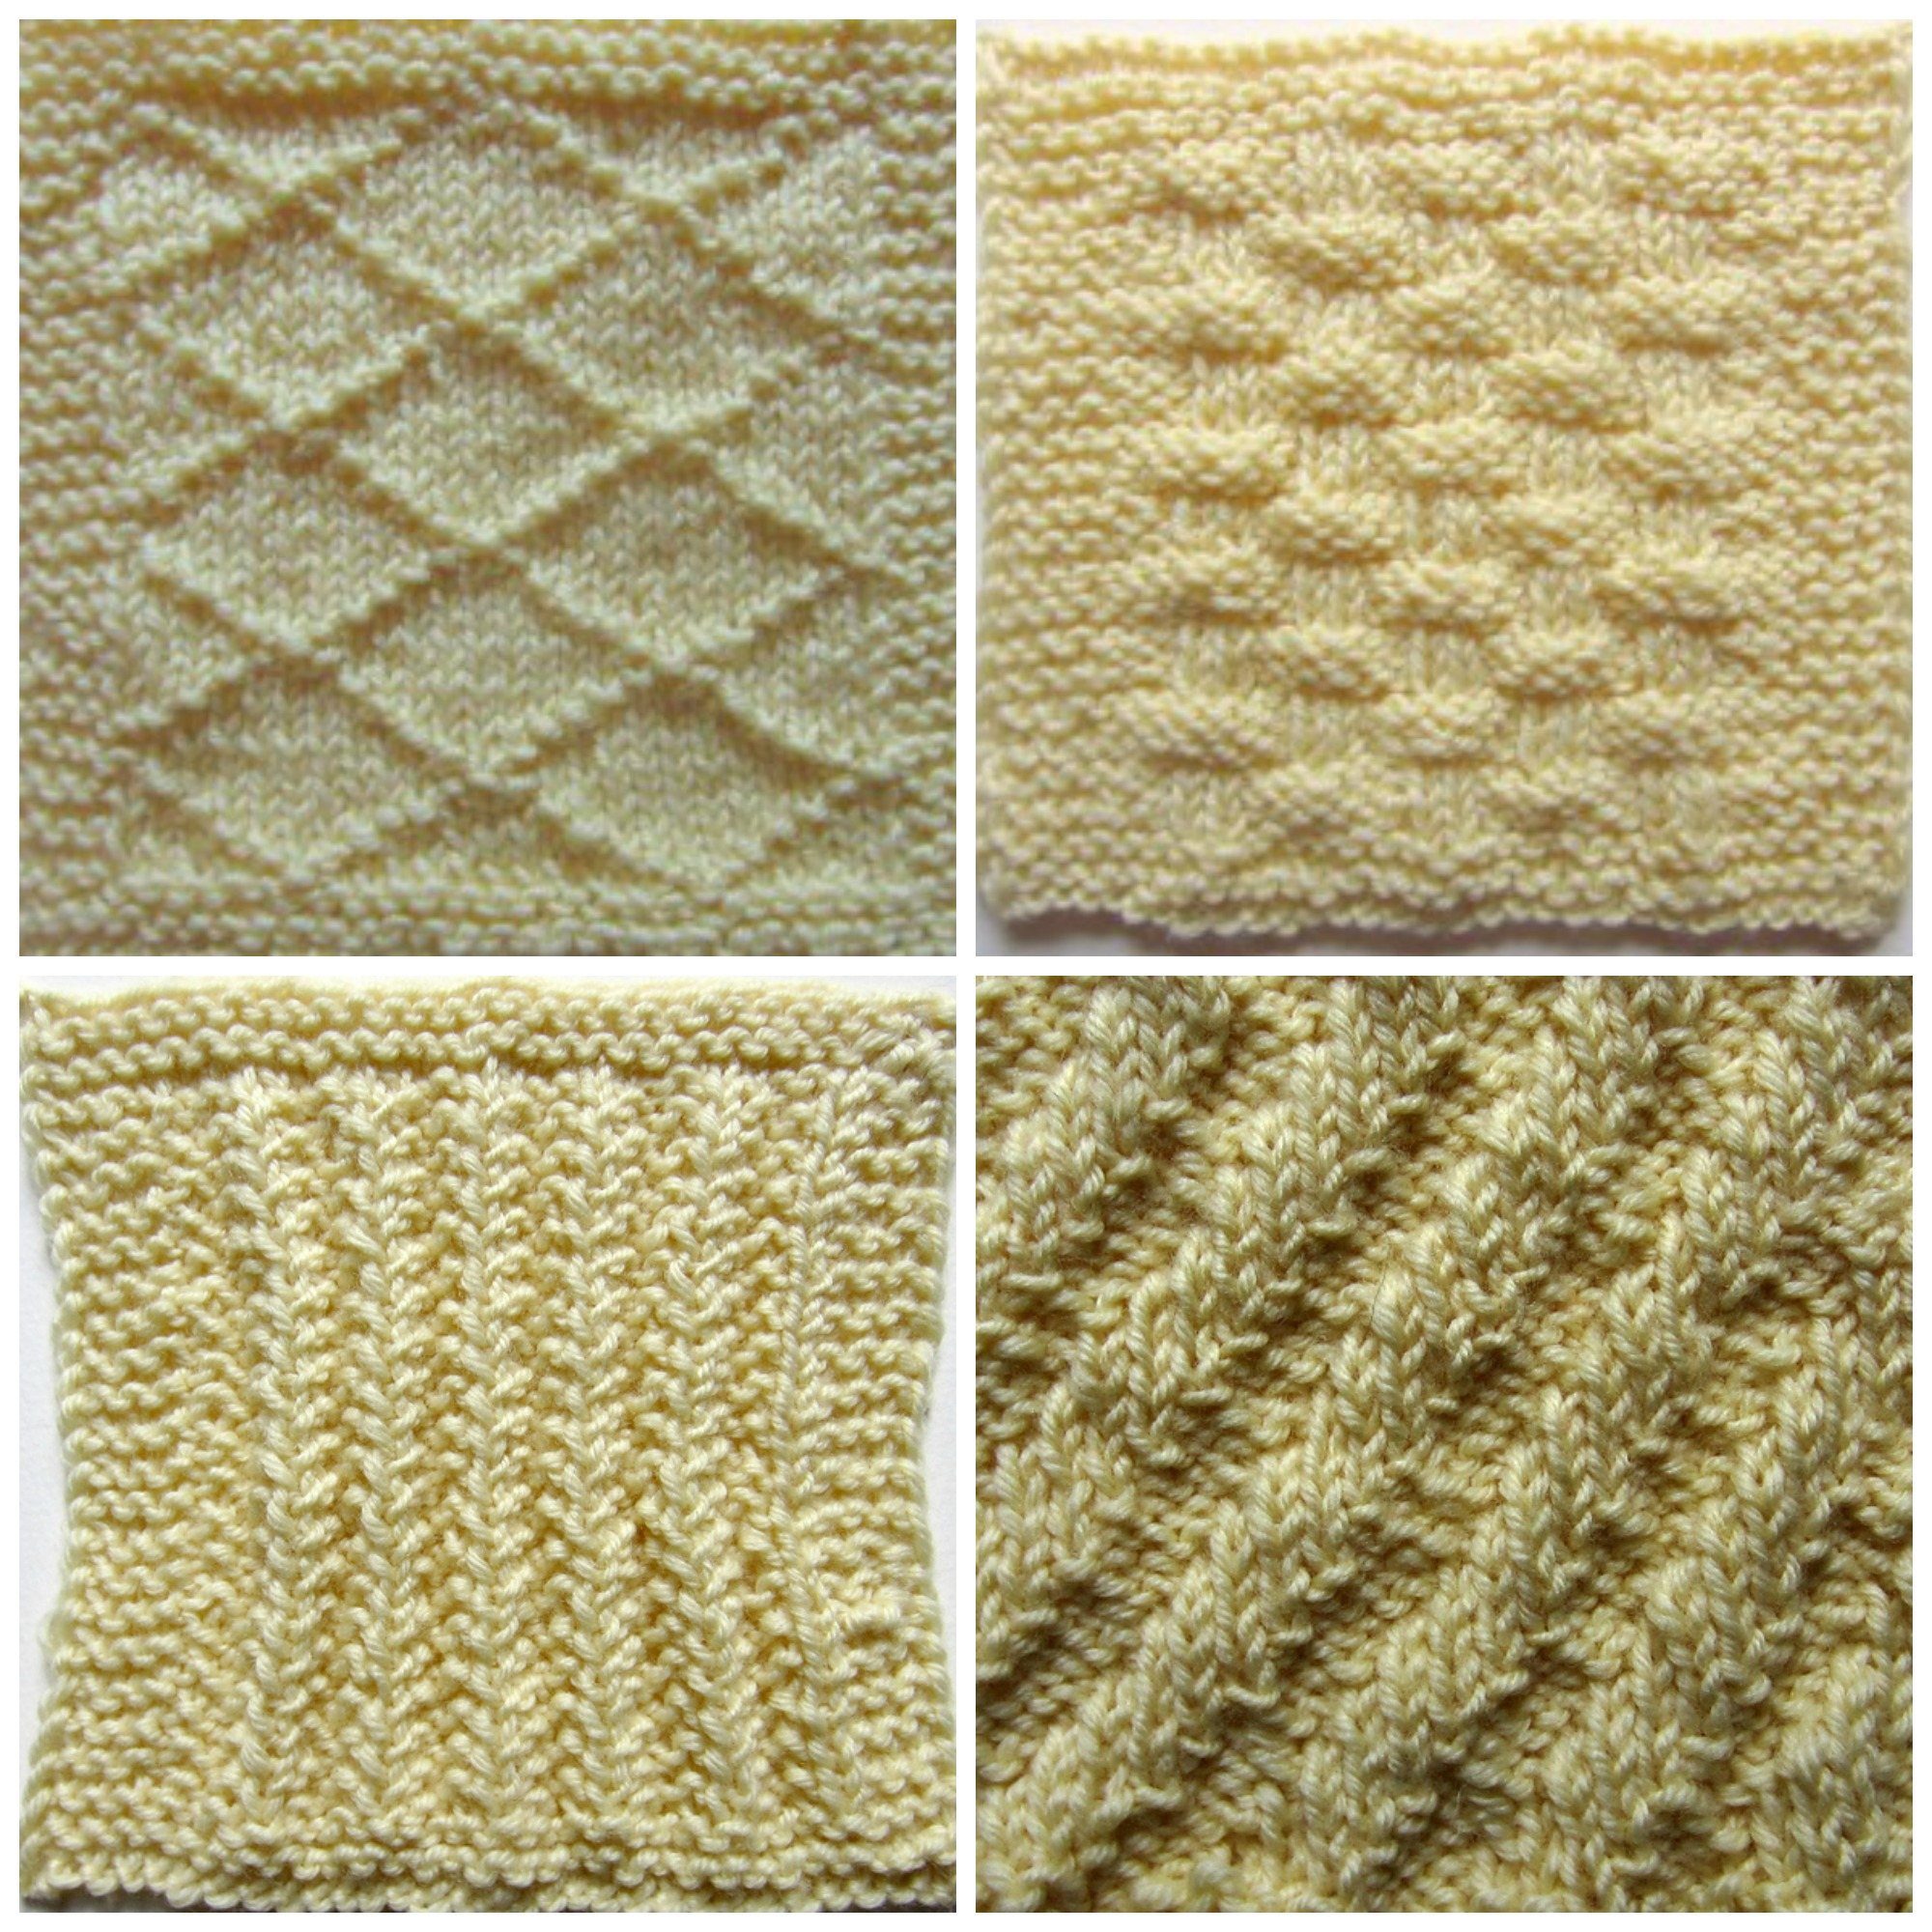 Knitting Sampler Pillow, Part 5: Assembly and Finishing - Stitch and ...